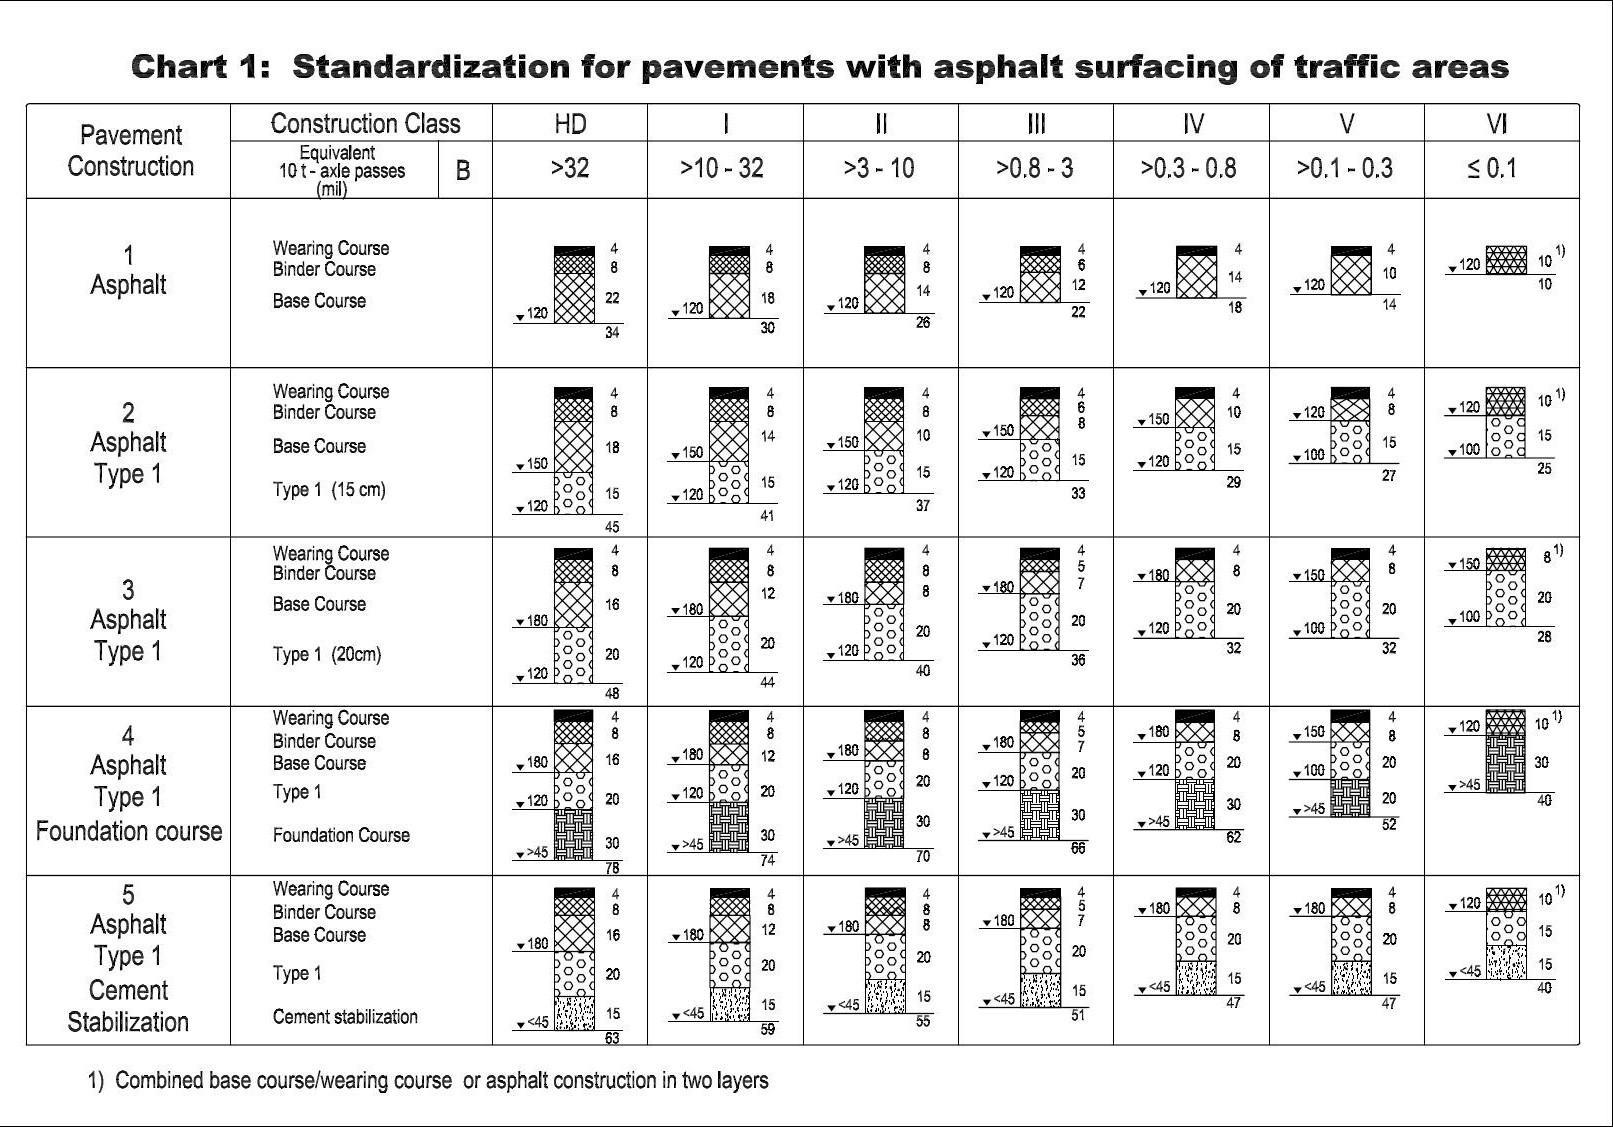 Standardization for Pavements with asphalt surfacing of traffic areas - Profs. Dr. Ing. Klaus Muller